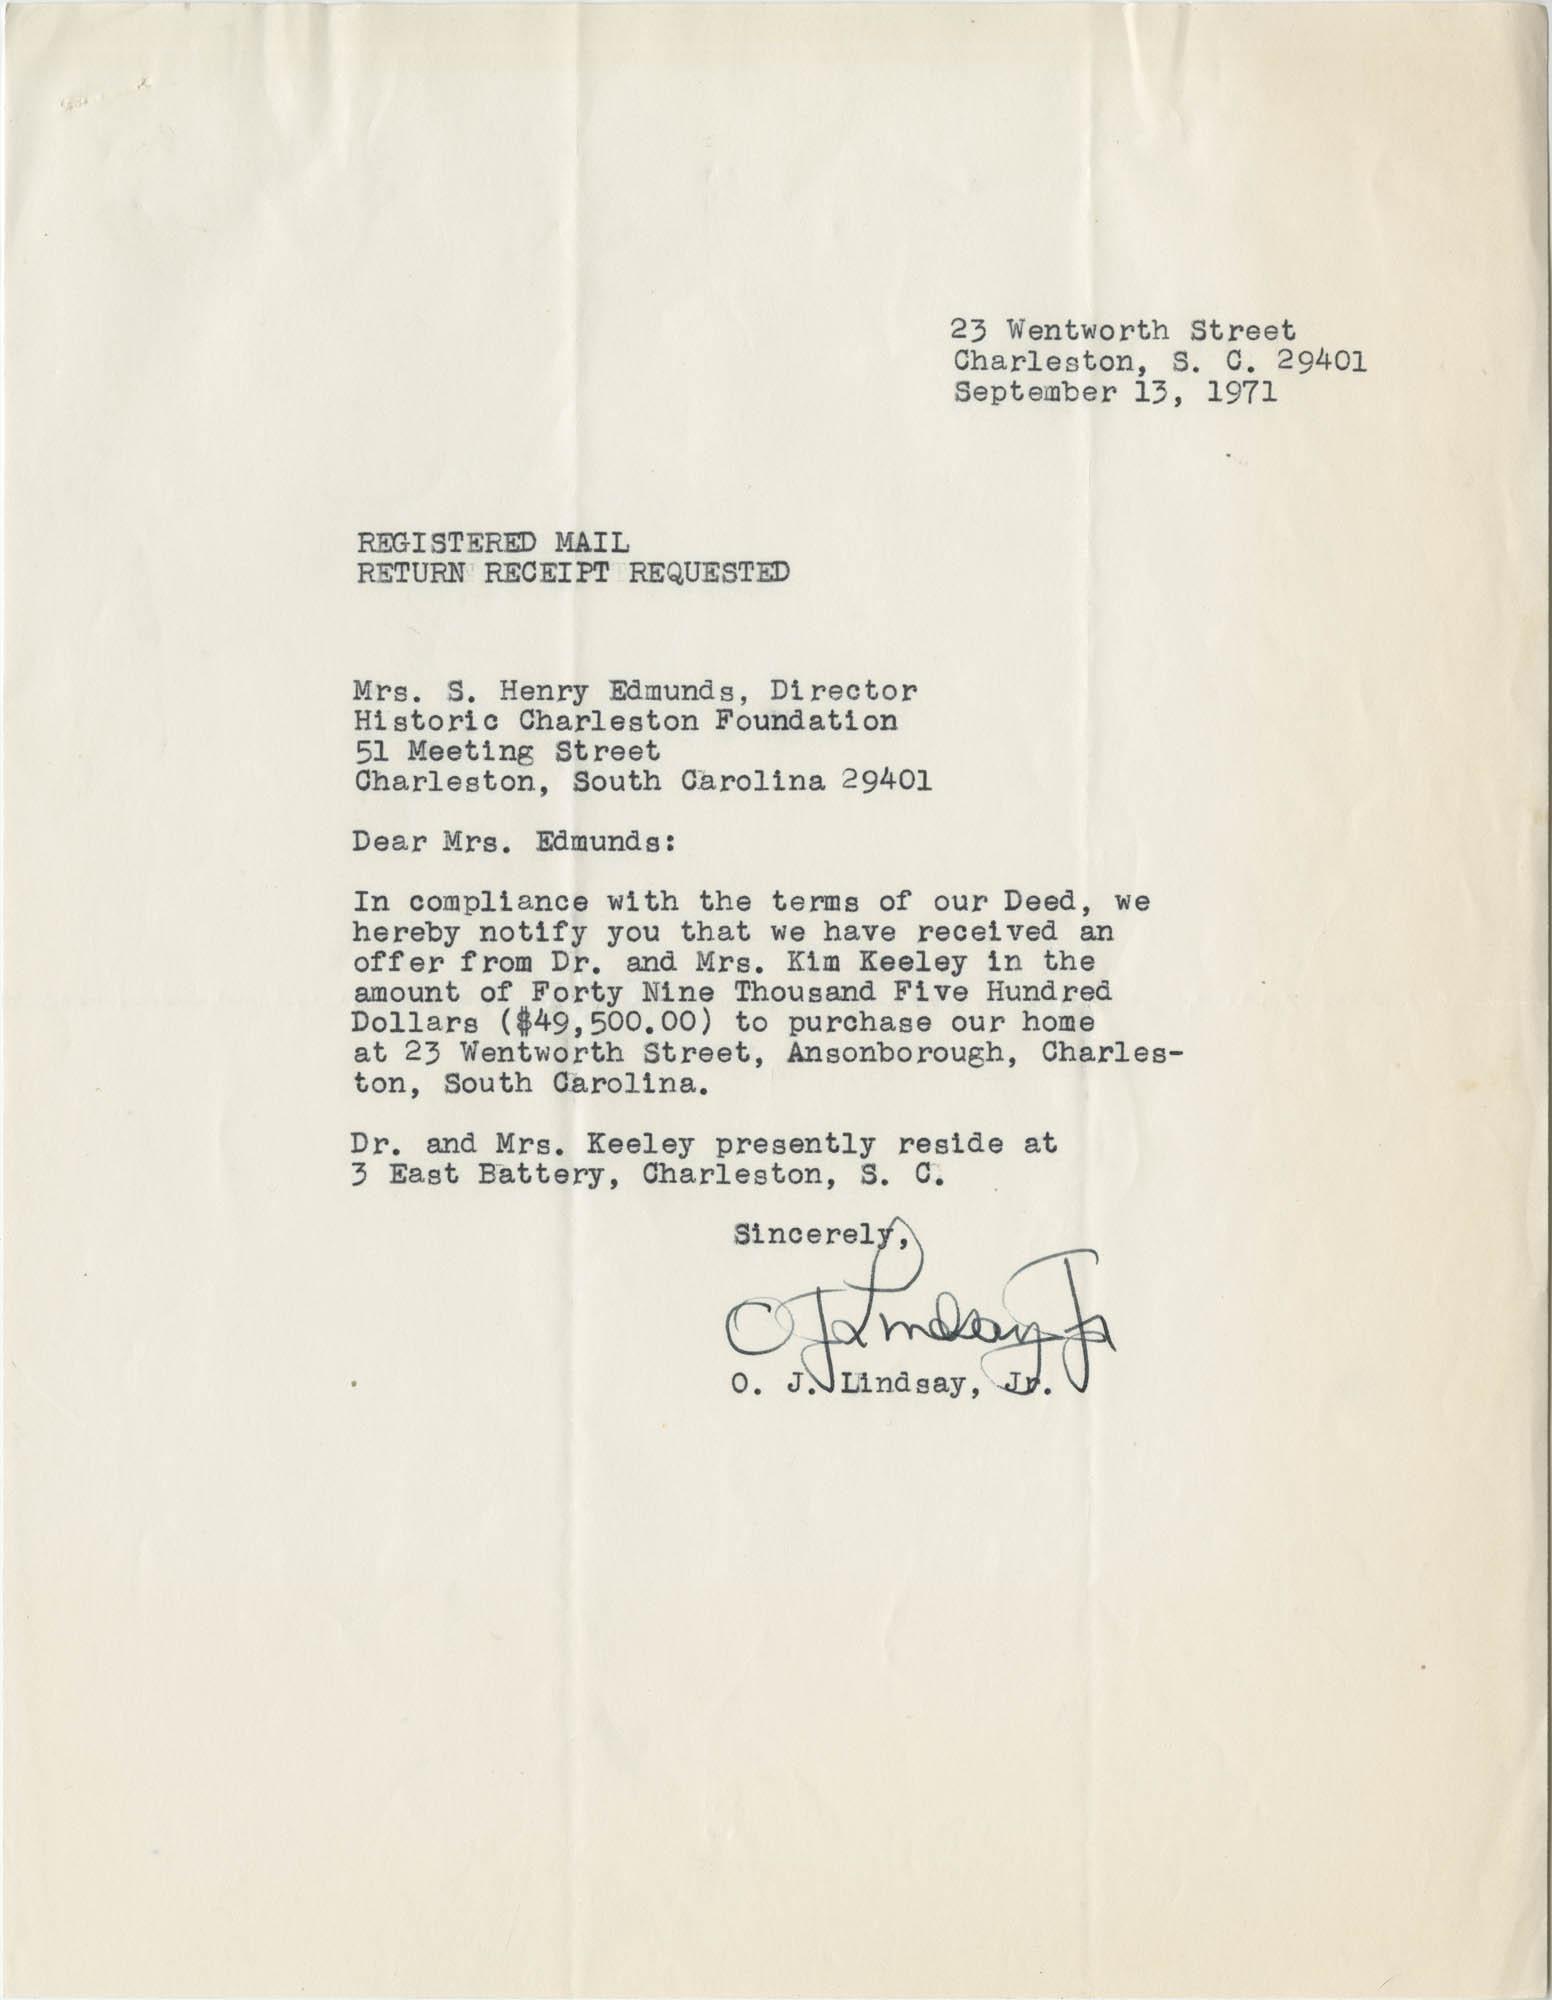 Letter from O. J. Lindsay, Jr. to Mrs. S. Henry Edmunds